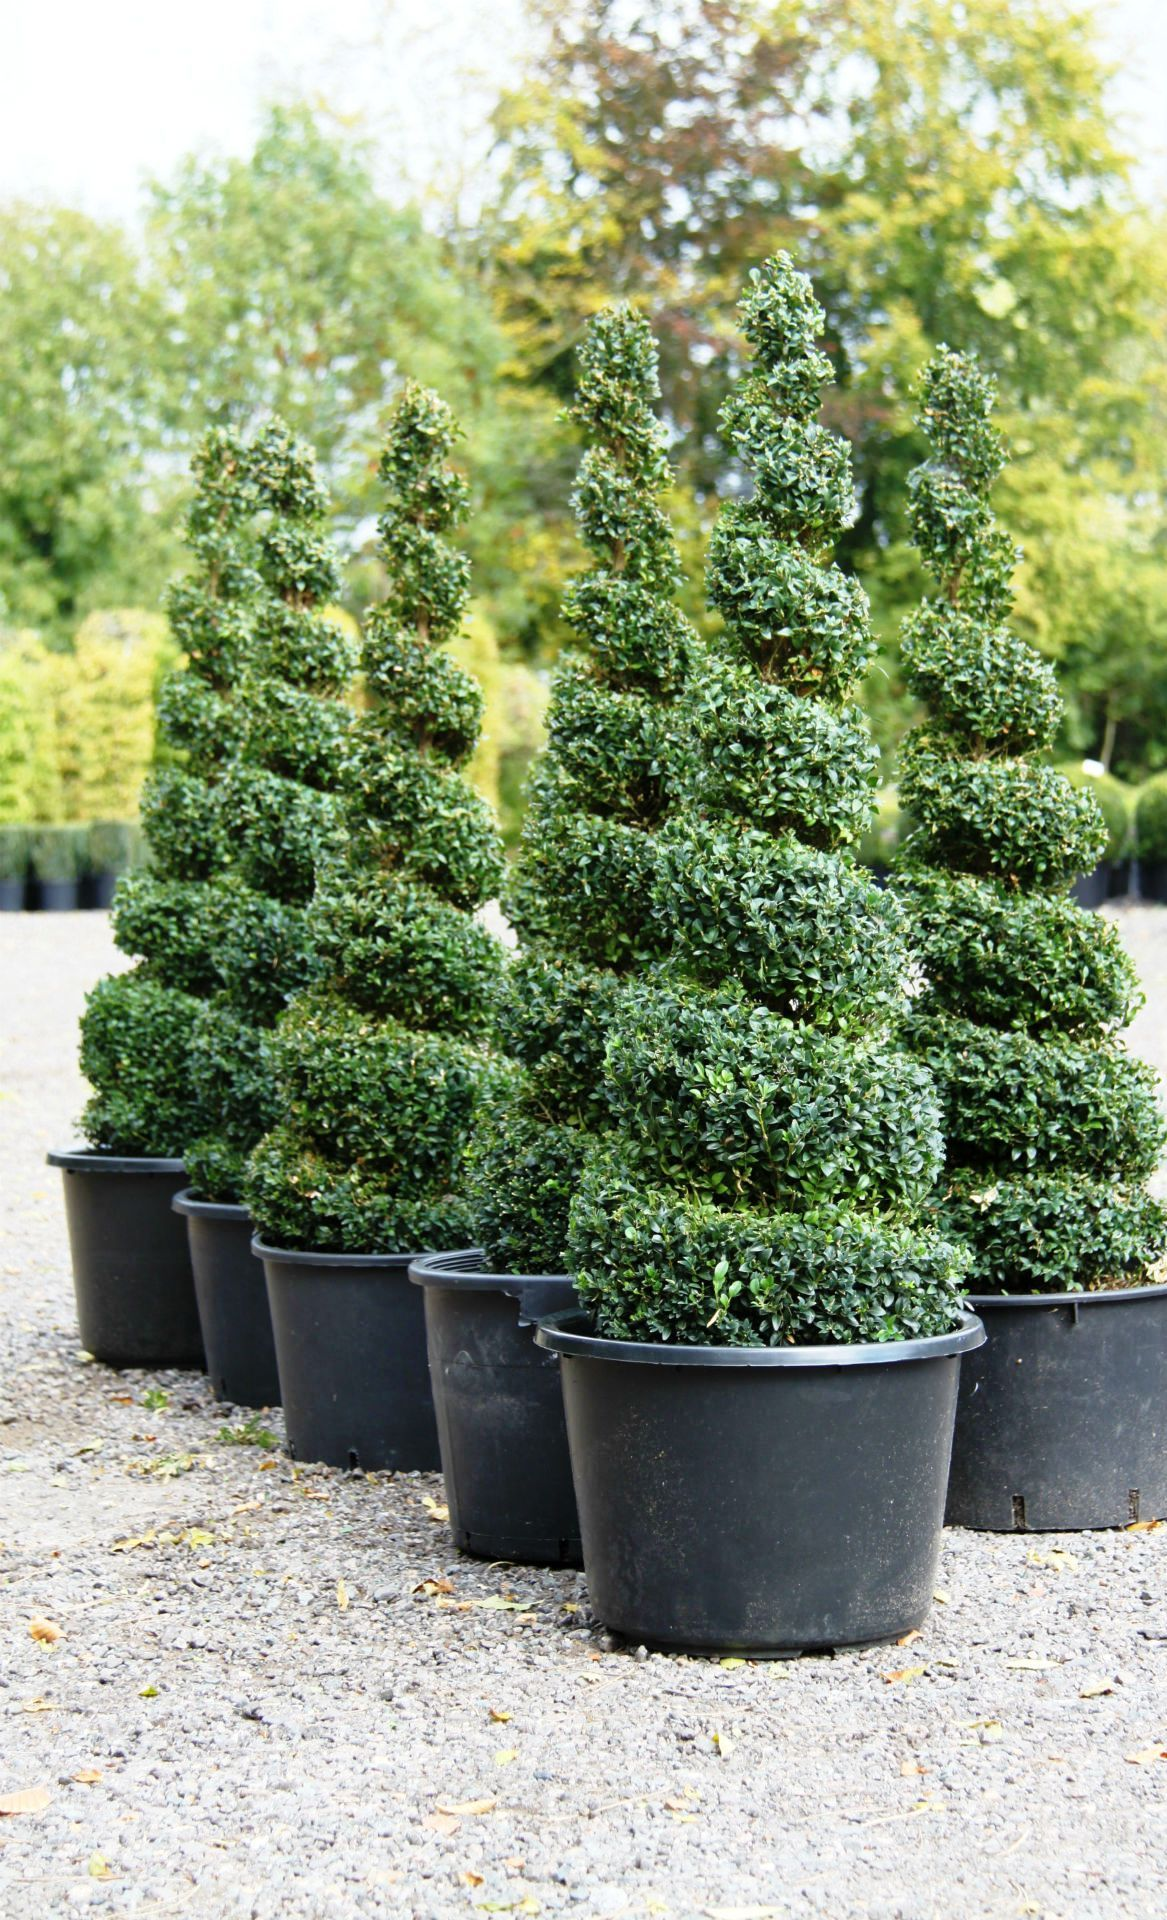 Topiary spirals from crown topiary hertford a topiary for Outside plants and shrubs